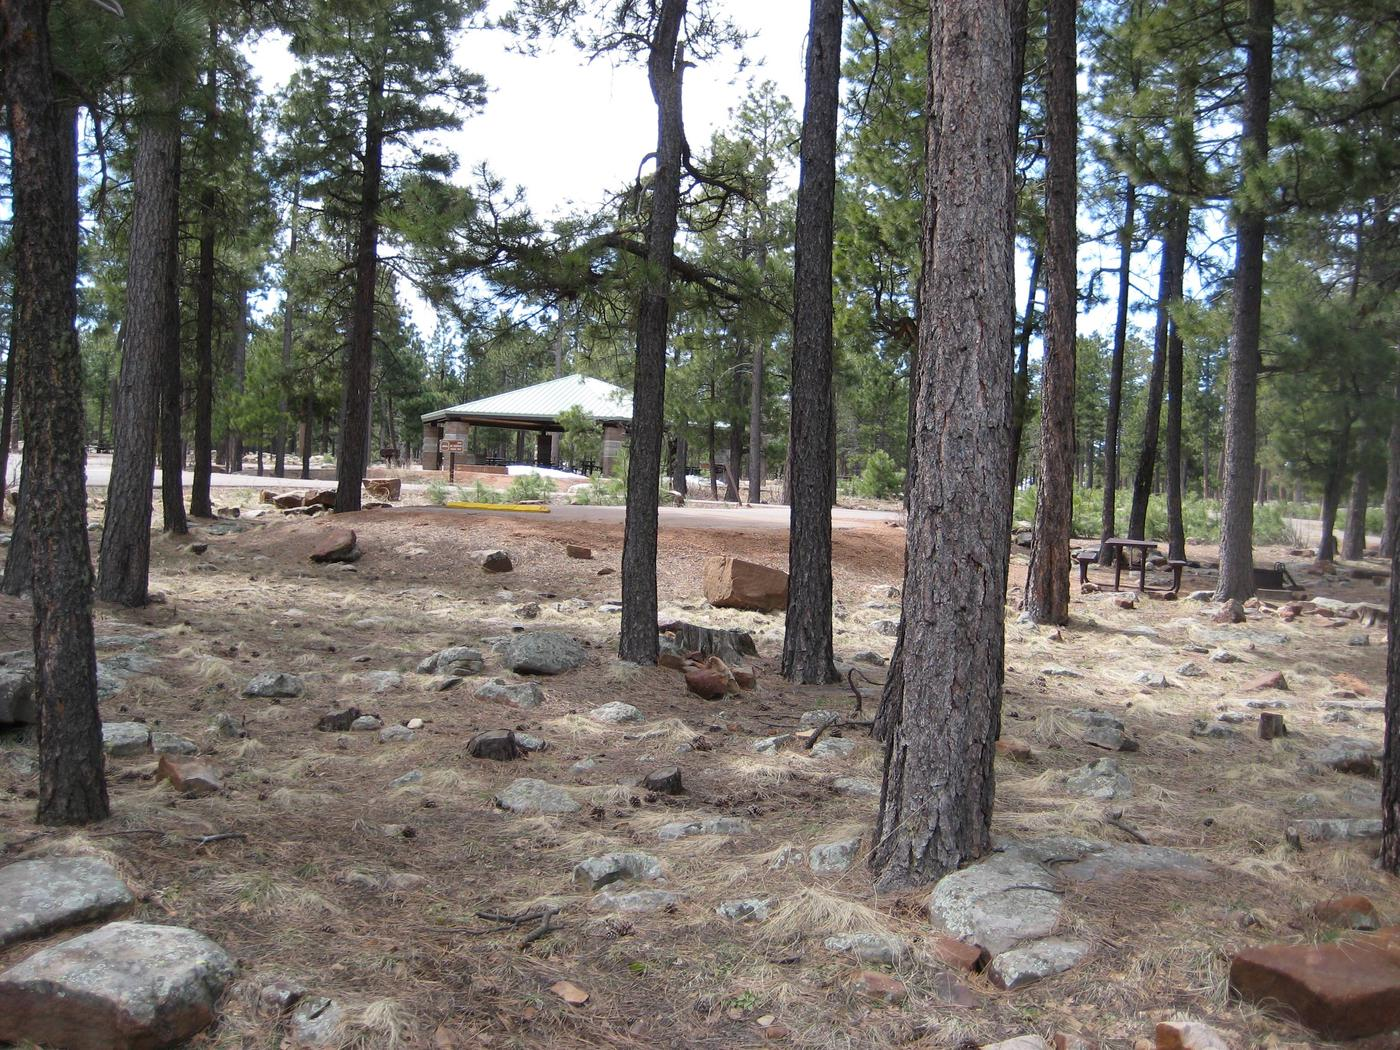 Crook Group CampgroundCrook Campground offers two group loops with Ramadas. Each loop can be reserved separately for groups up to 125 or both loops together for larger groups.